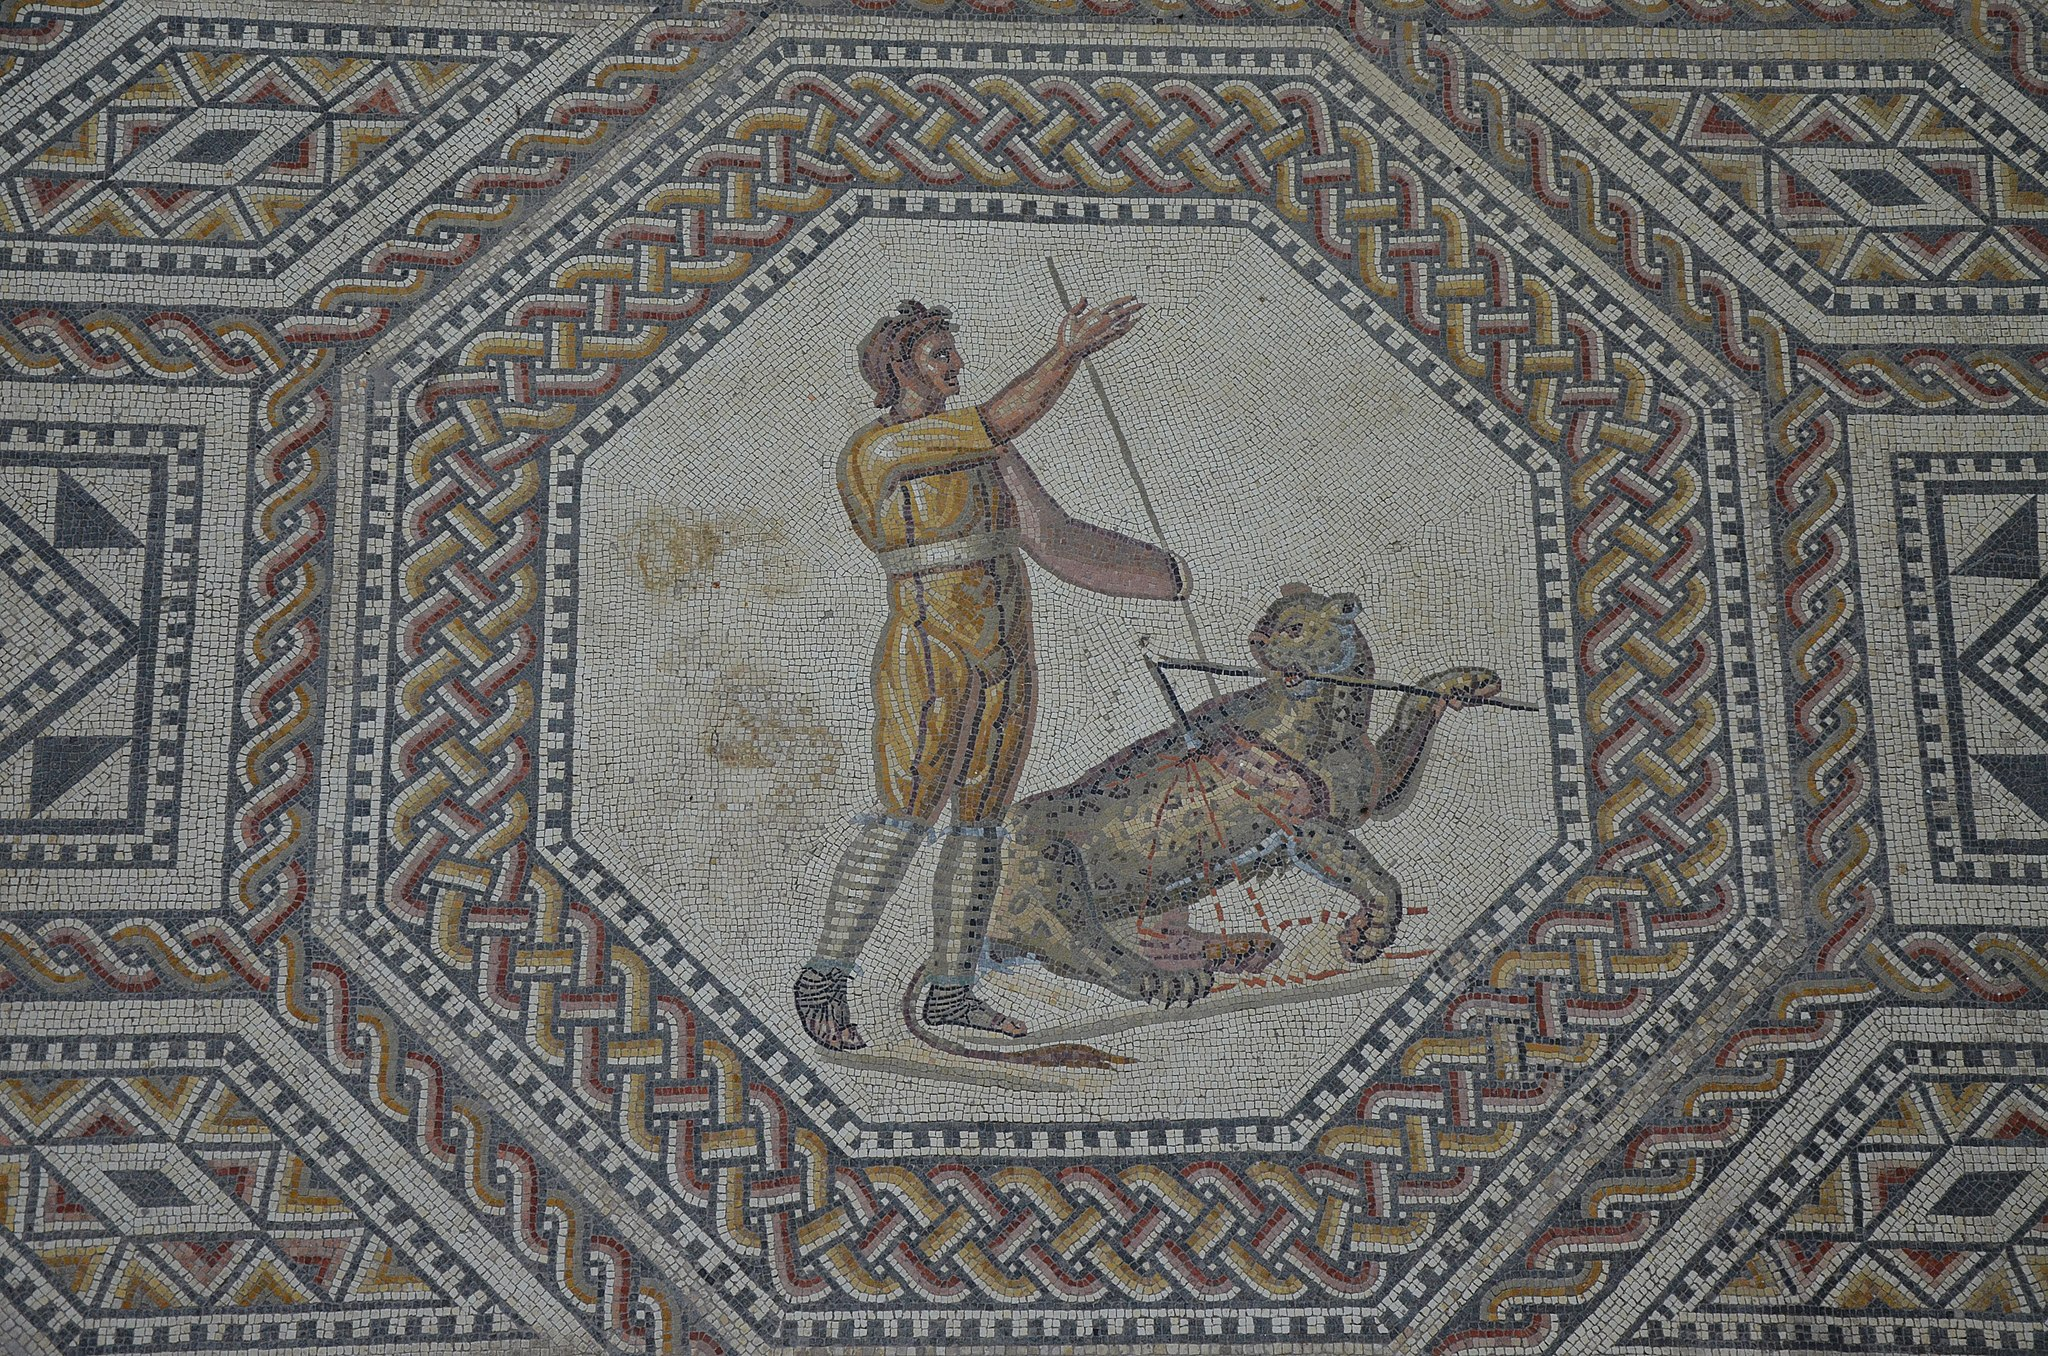 Mosaic of a panther with javelin thrower located in a Roman villa in Nennig Germany ( Wikimedia Commons )